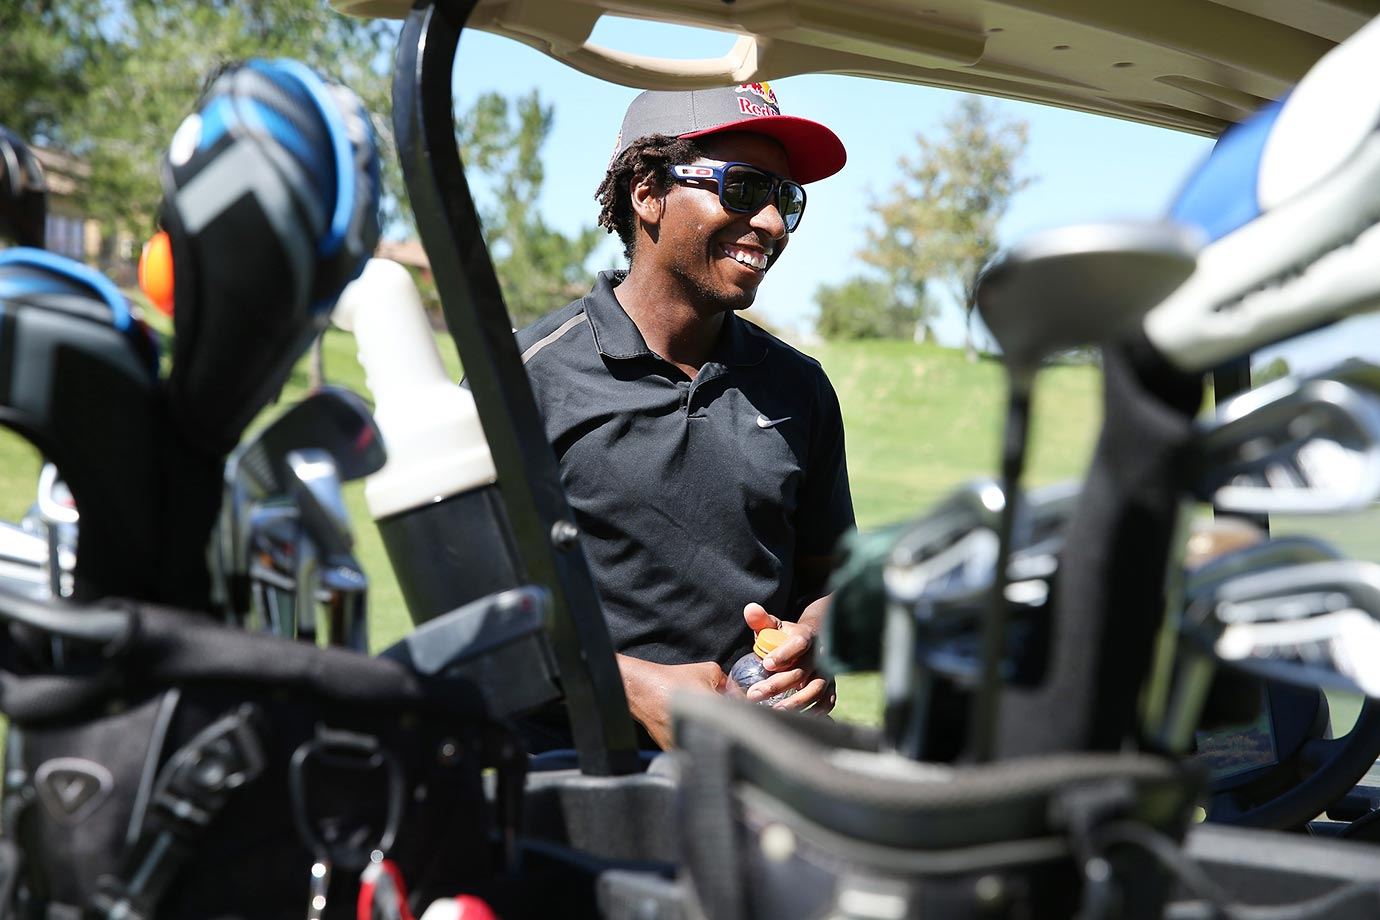 James Stewart is an avid golfer in his spare time, and gets in a round of golf whenever he can when he's not riding or training.